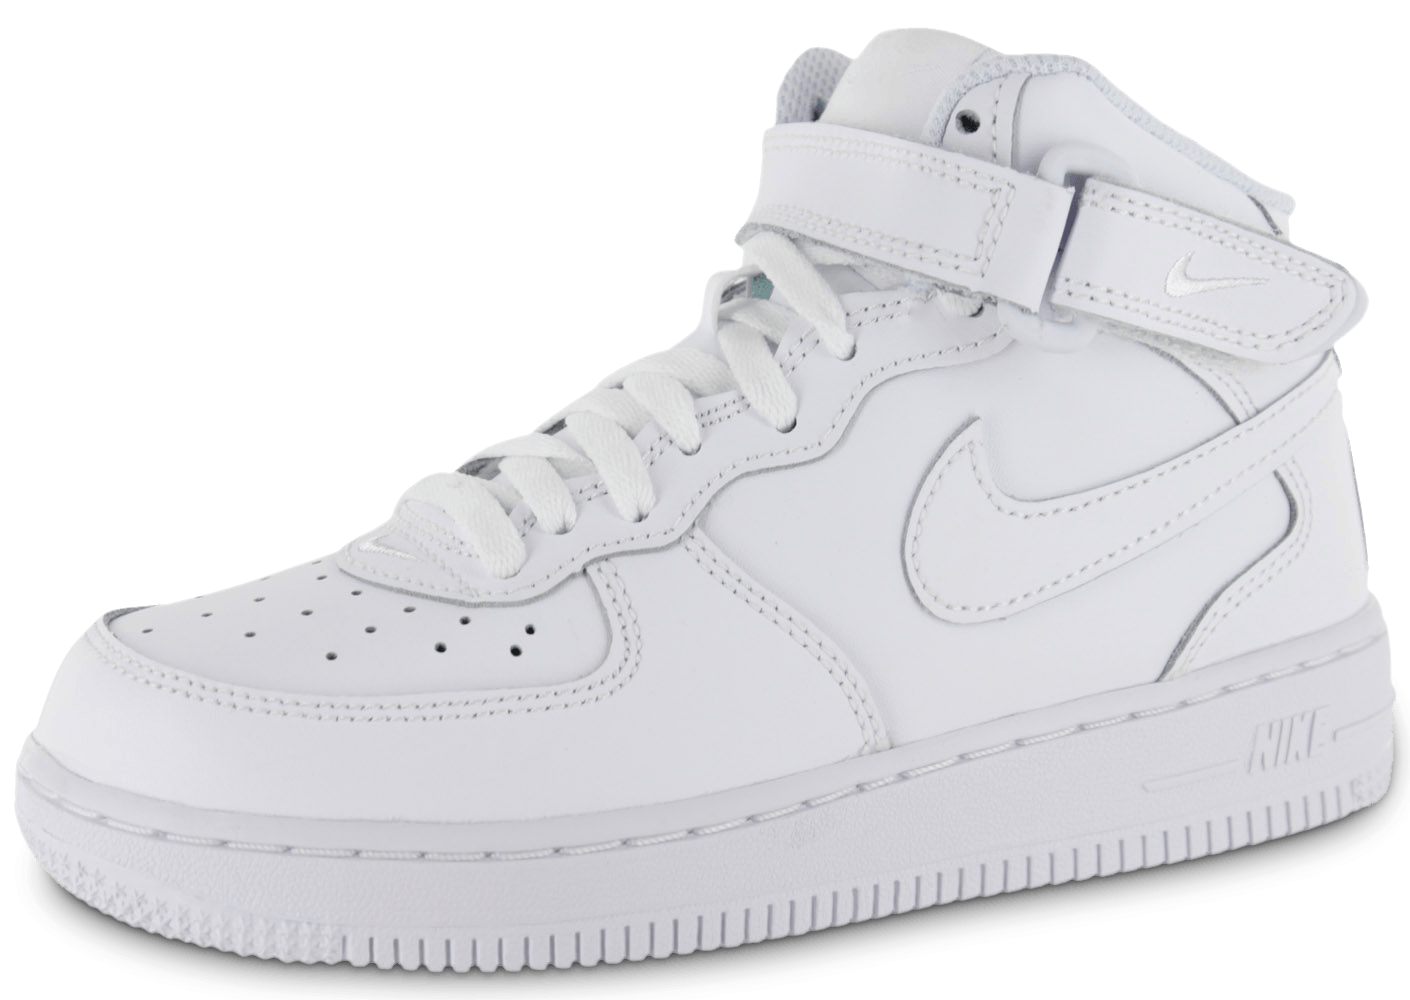 nike air force 1 mid enfant blanche chaussures toutes les baskets sold es chausport. Black Bedroom Furniture Sets. Home Design Ideas